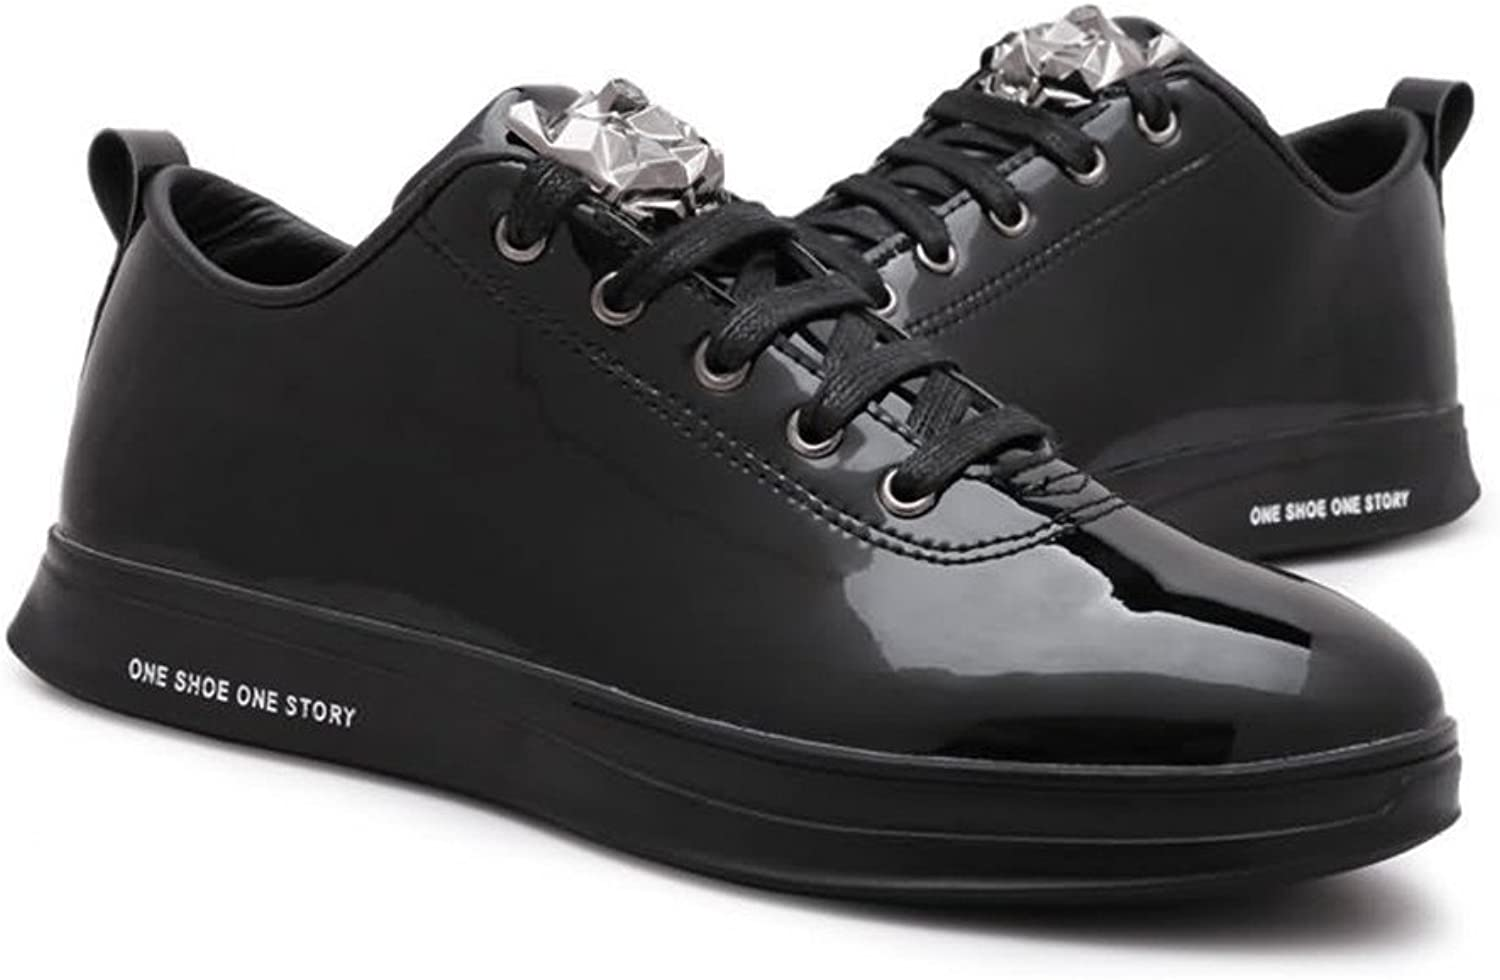 Dig dog bone Men's Fashion Sneaker Flat Heel Lace Up Patent Leather Casual shoes